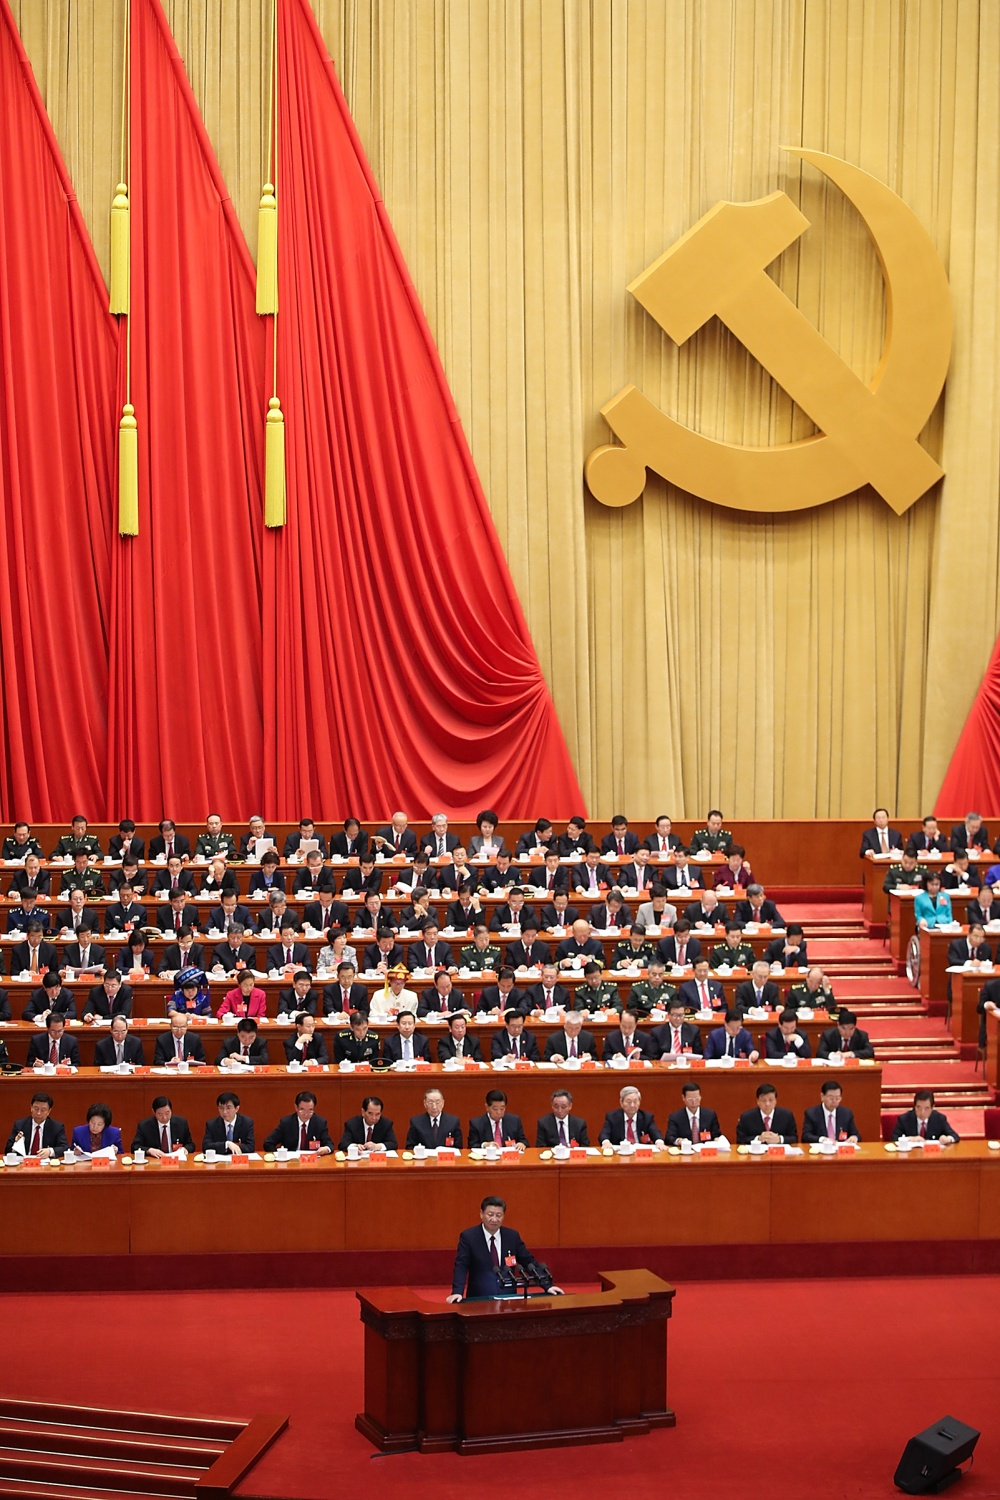 Chinese President Xi Jinping delivers a speech during the opening session of the 19th Communist Party Congress in Beijing on Oct. 18, 2017.